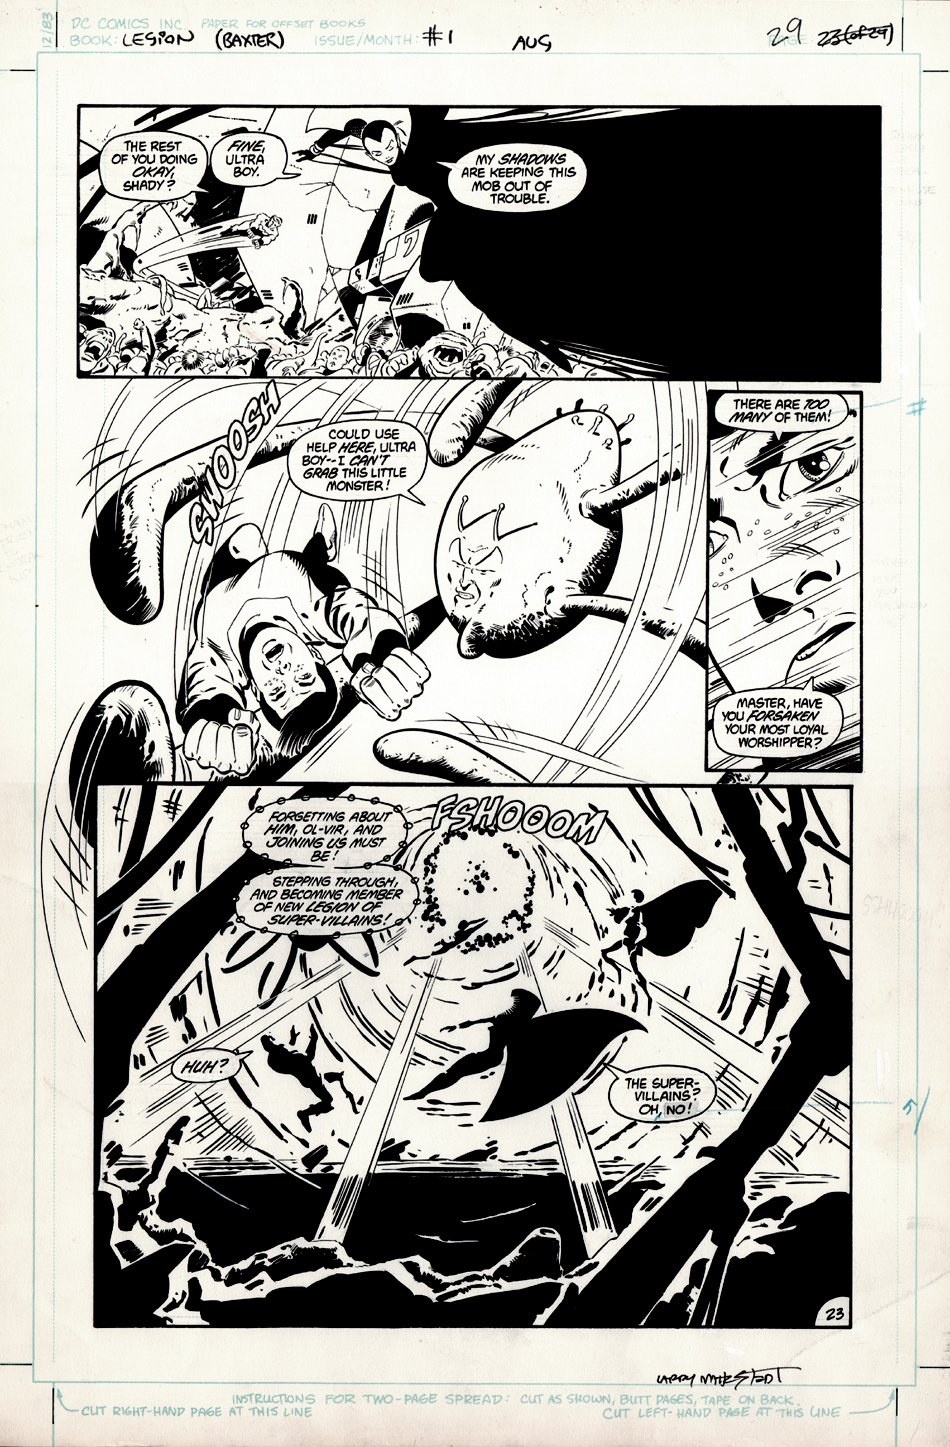 Legion of Super-Heroes #1 p 23 (Large Art) 1984